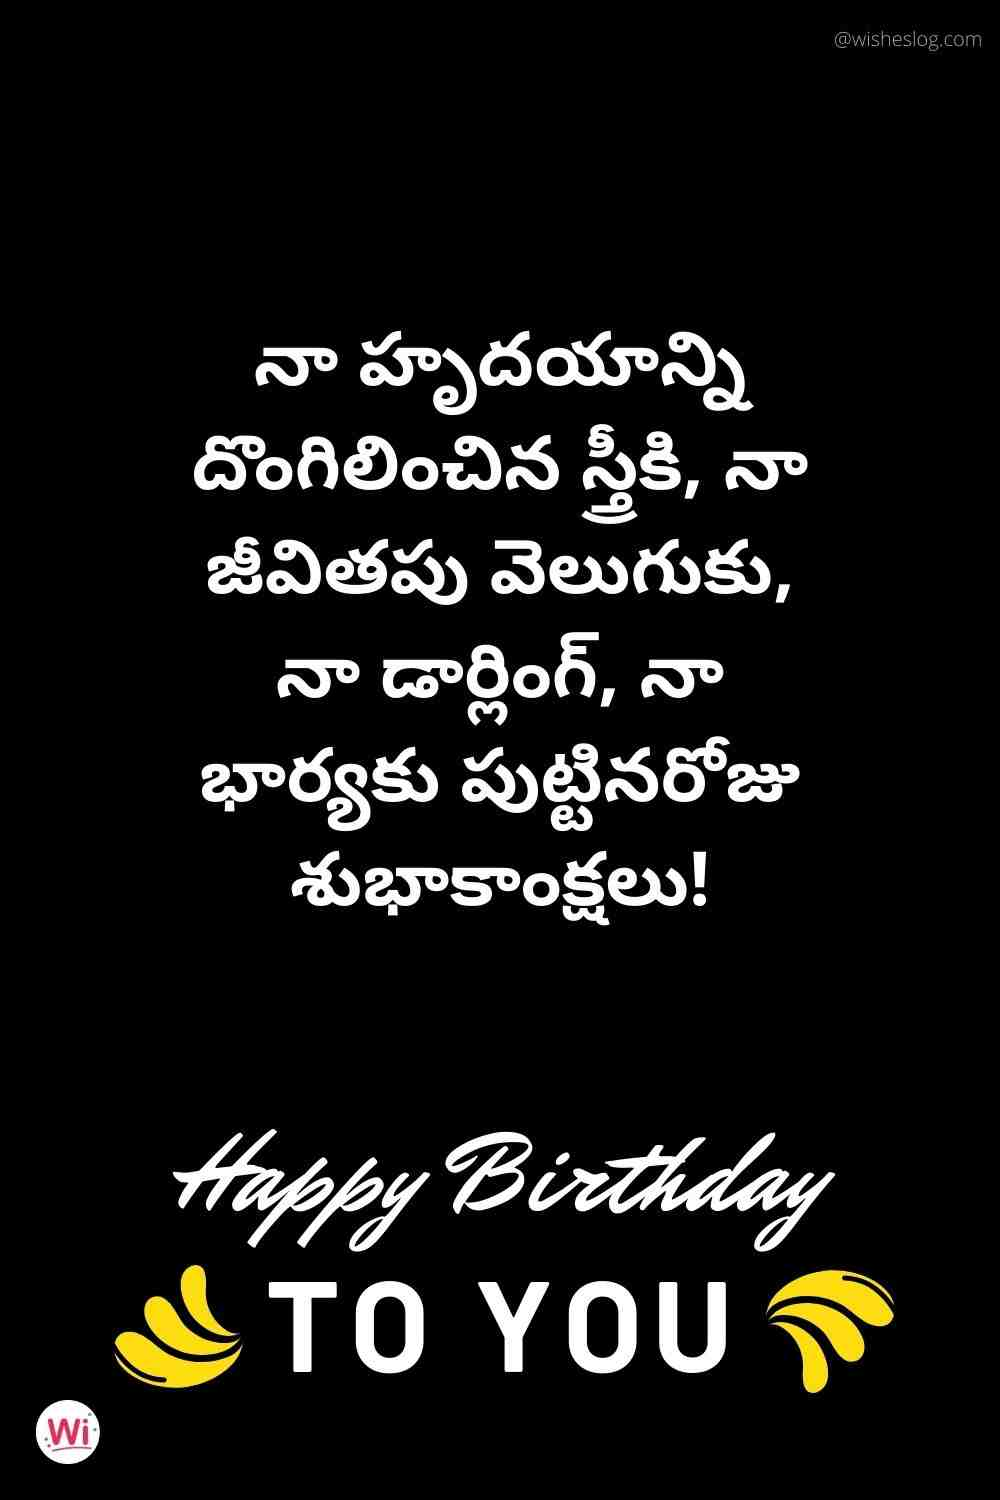 birthday wishes in telugu for wife